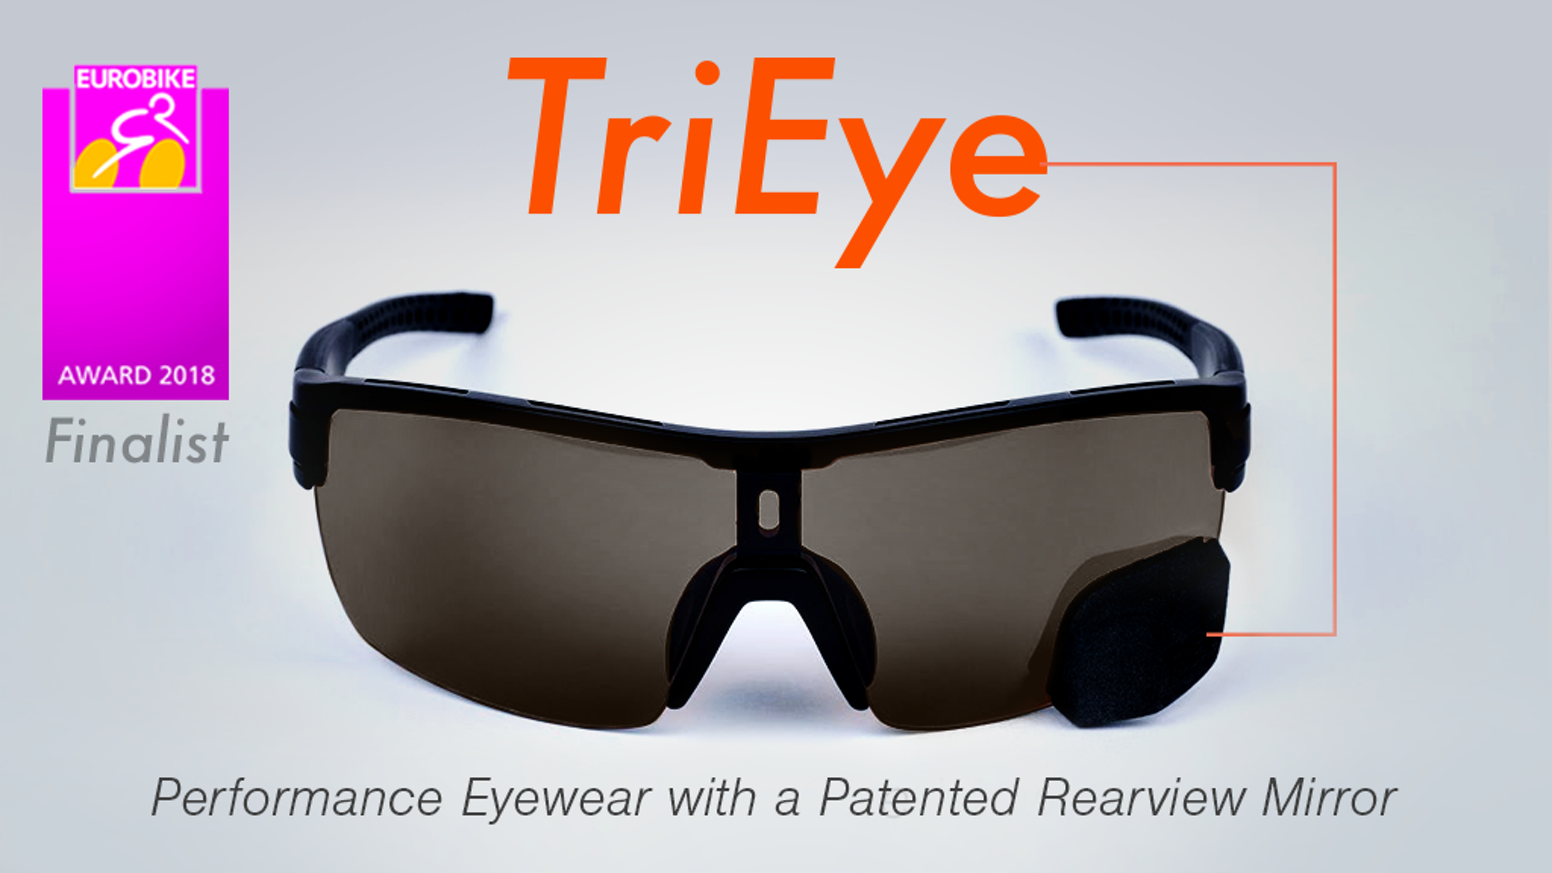 TriEye lets you keep an eye on the road behind with a simple tilt of your head.